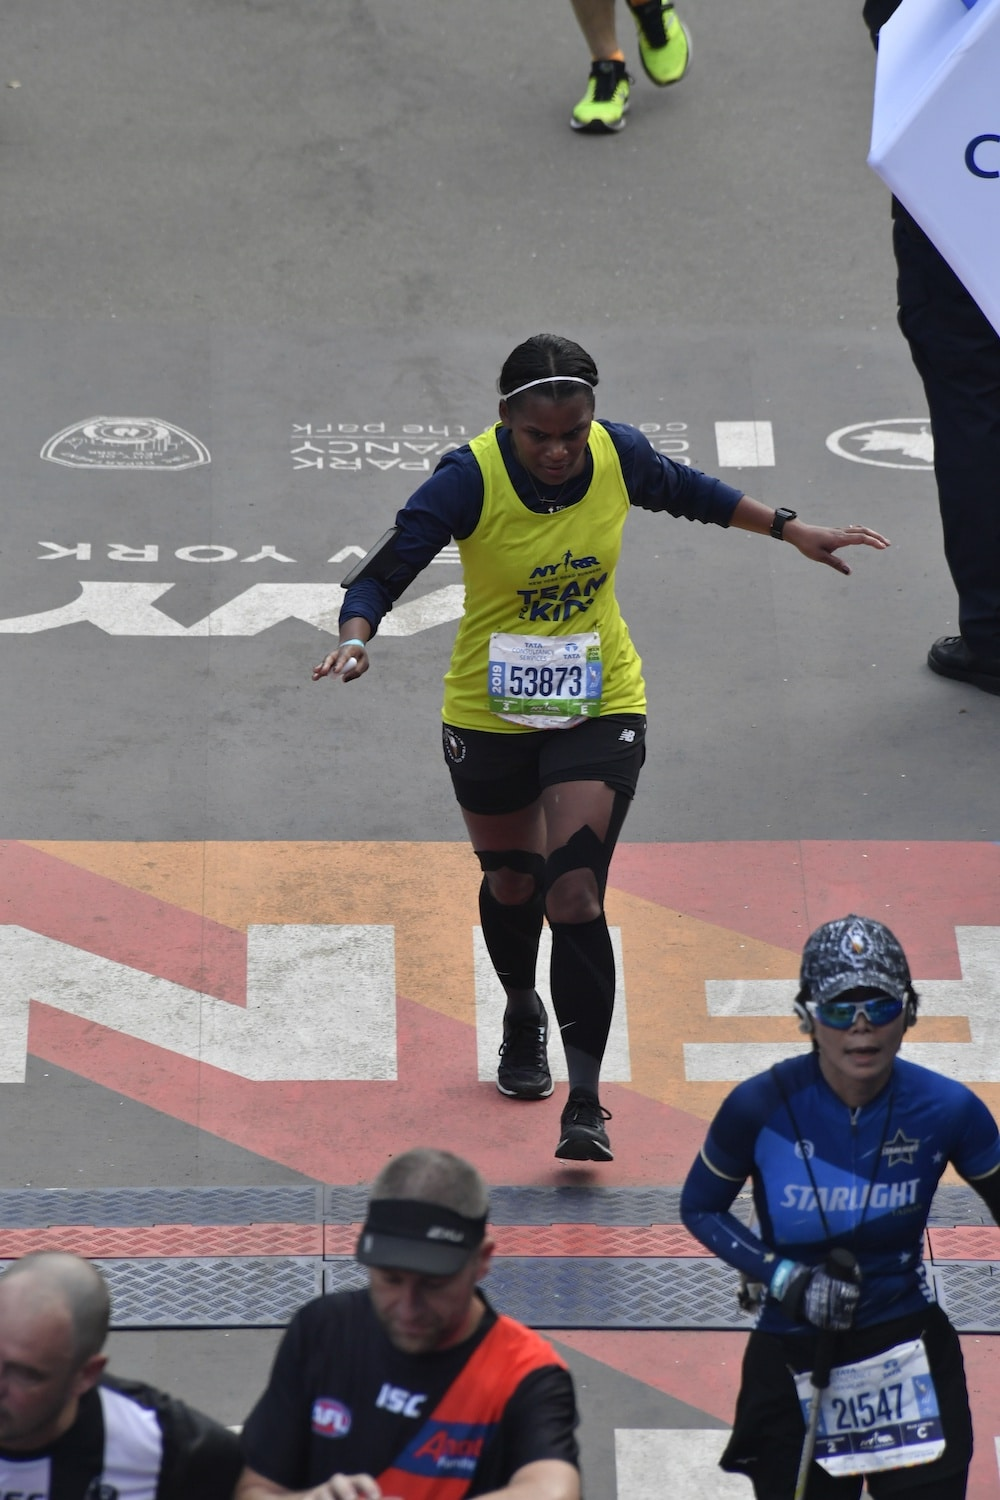 marathon-new-york Marathon New York 2019, un rêve qui s'est réalisé - TEAM FOR KIDS !